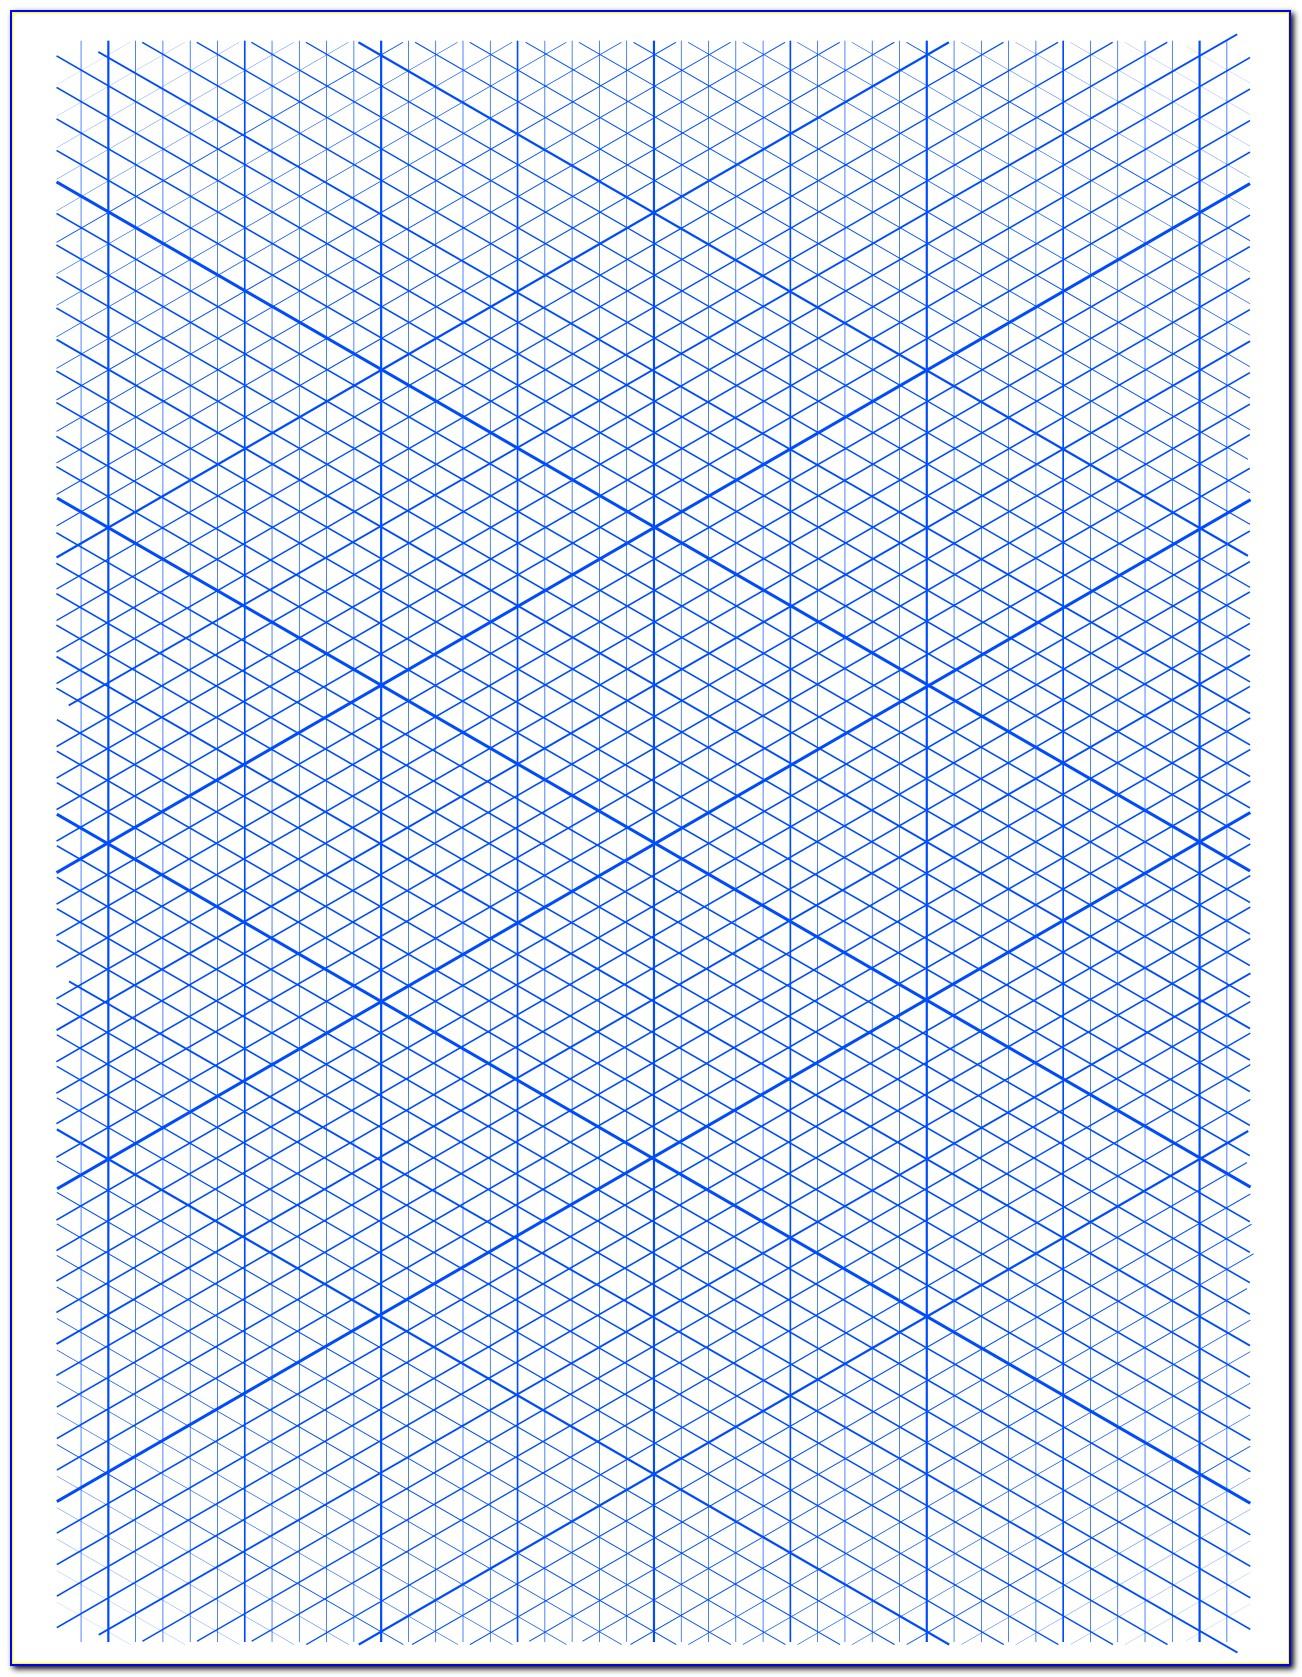 Isometric Dot Grid Paper Printable